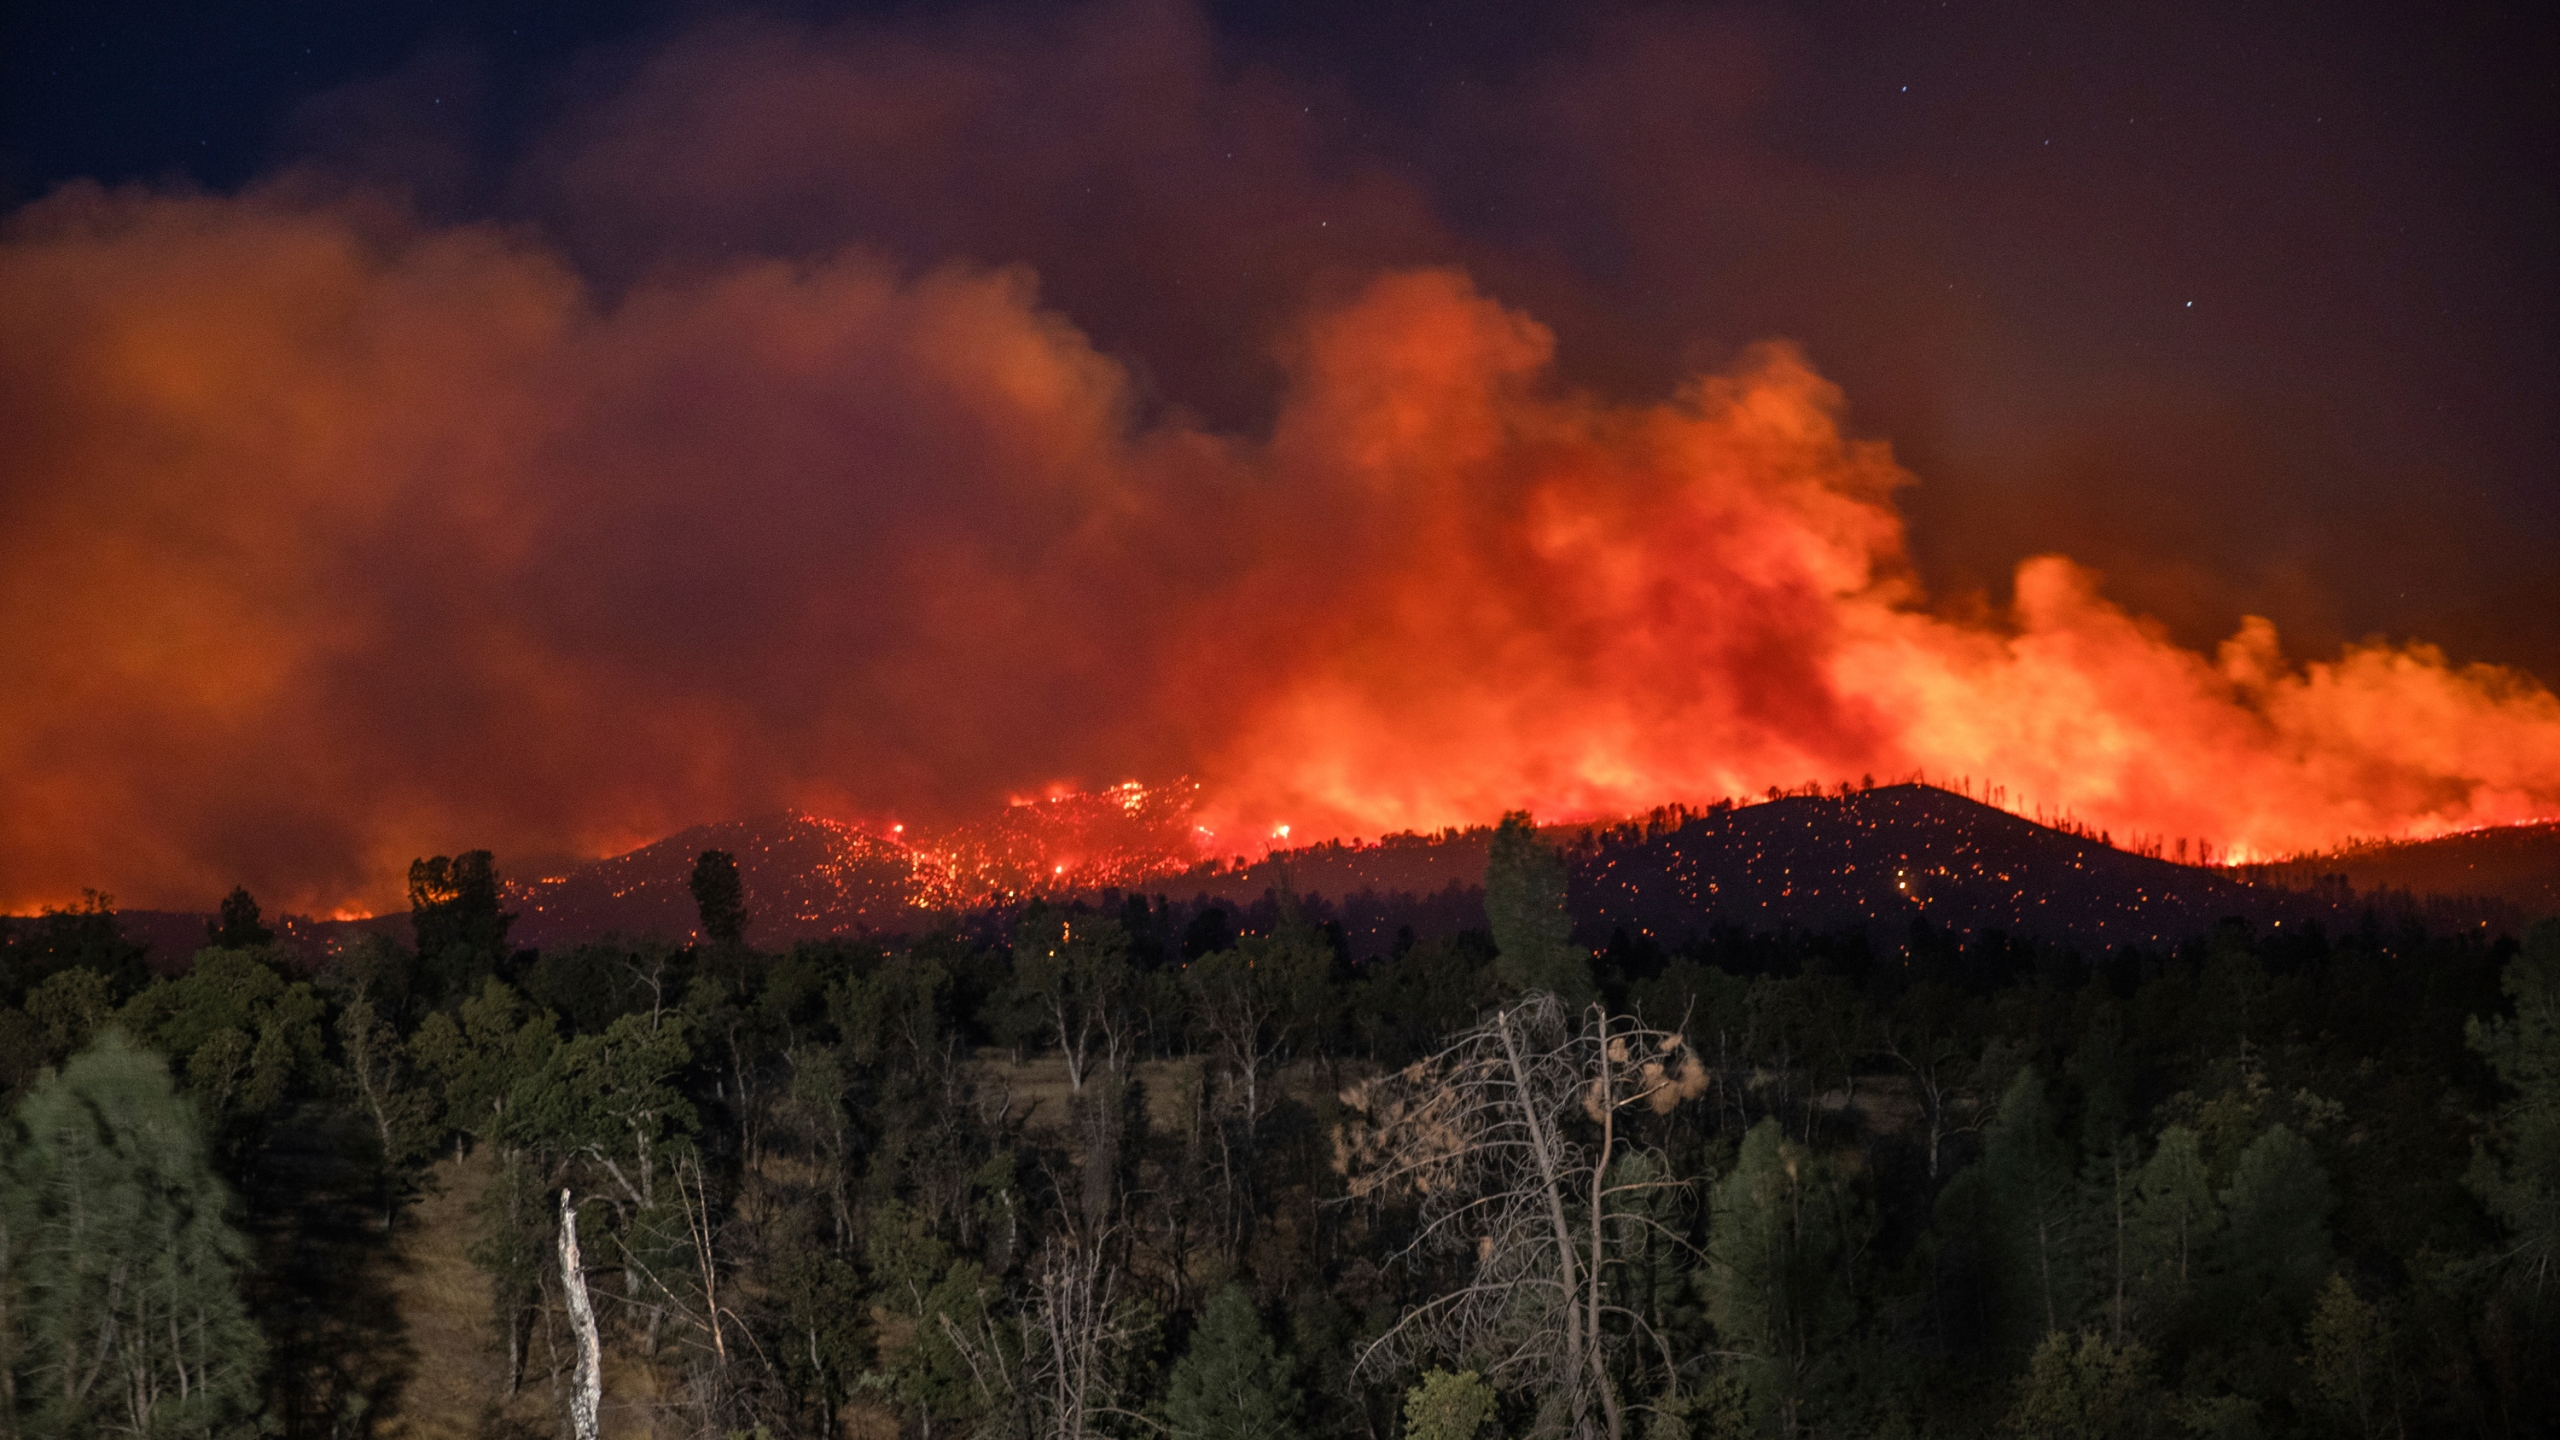 Flame are visible from the Zogg Fire on Clear Creek Road near Igo, Calif., on Monday, Sep. 28, 2020. (AP Photo/Ethan Swope)